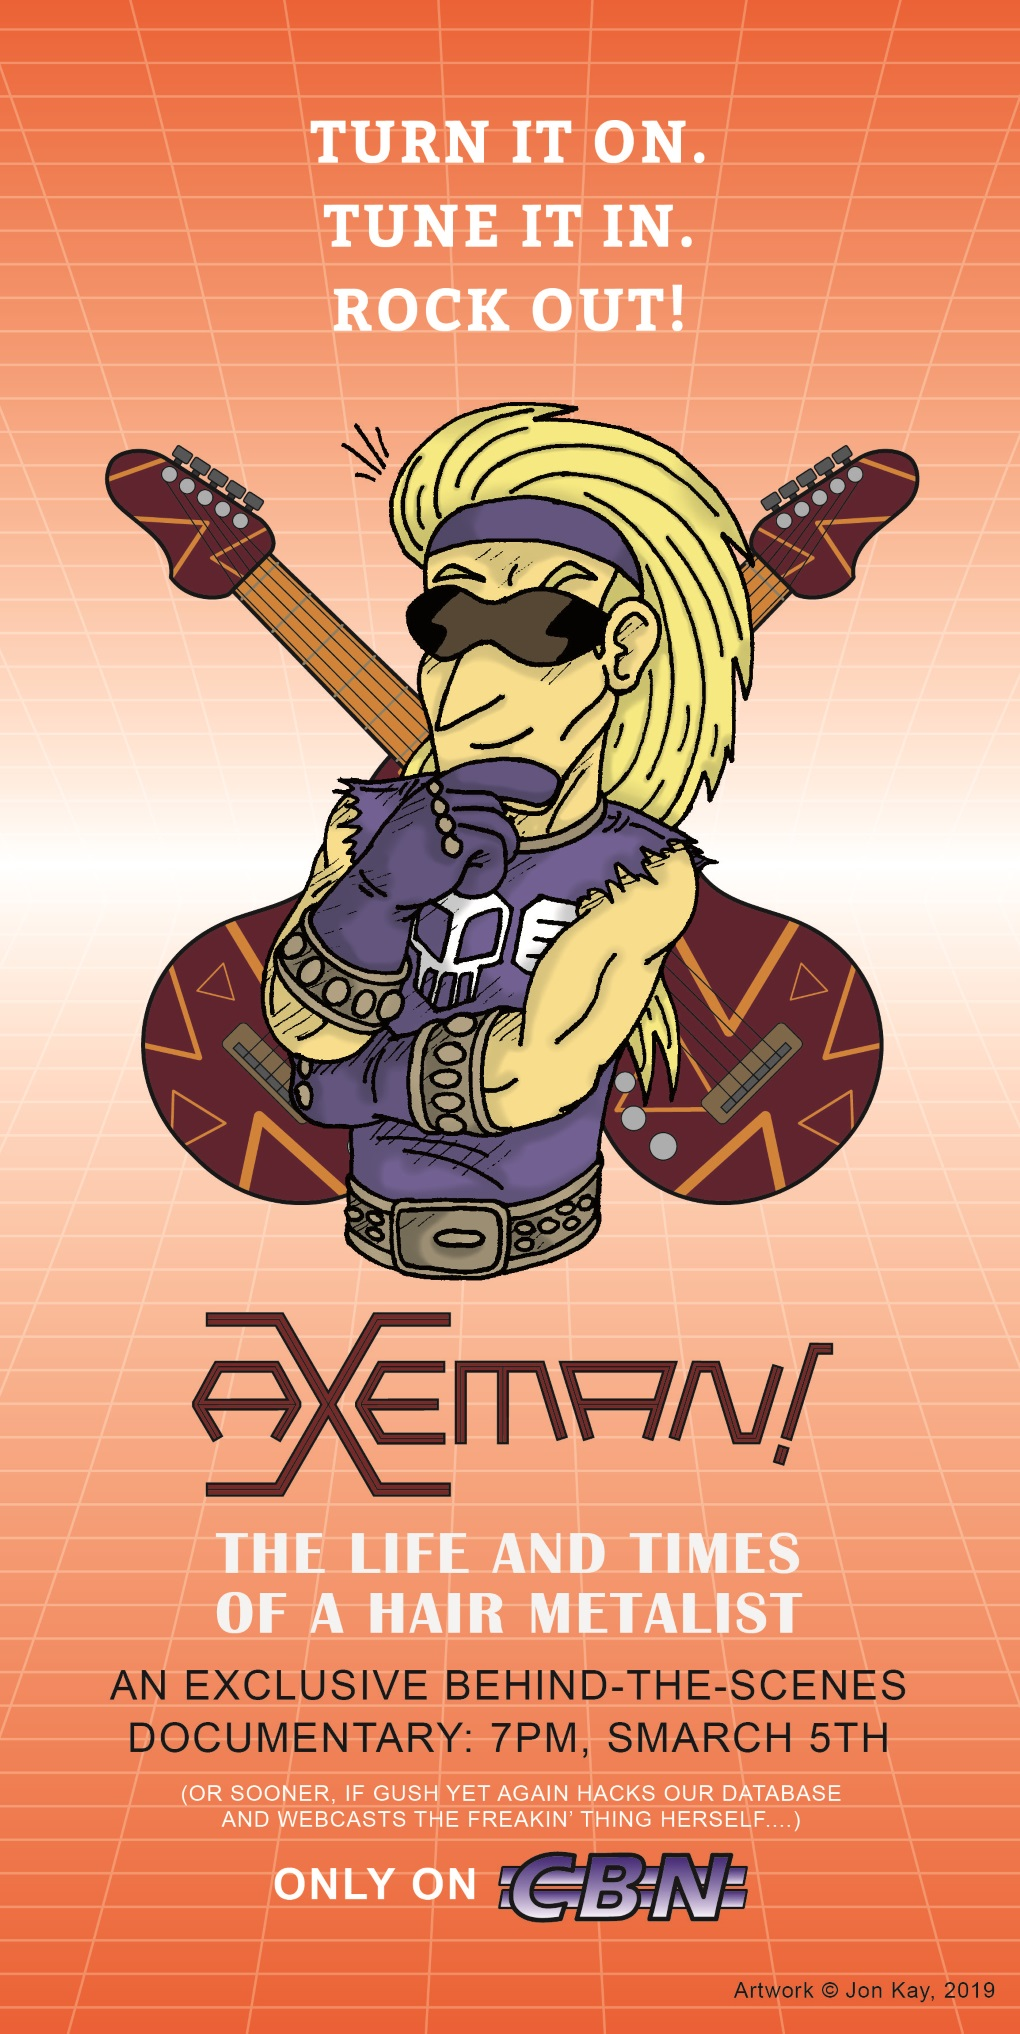 All hail to the AxeMan!